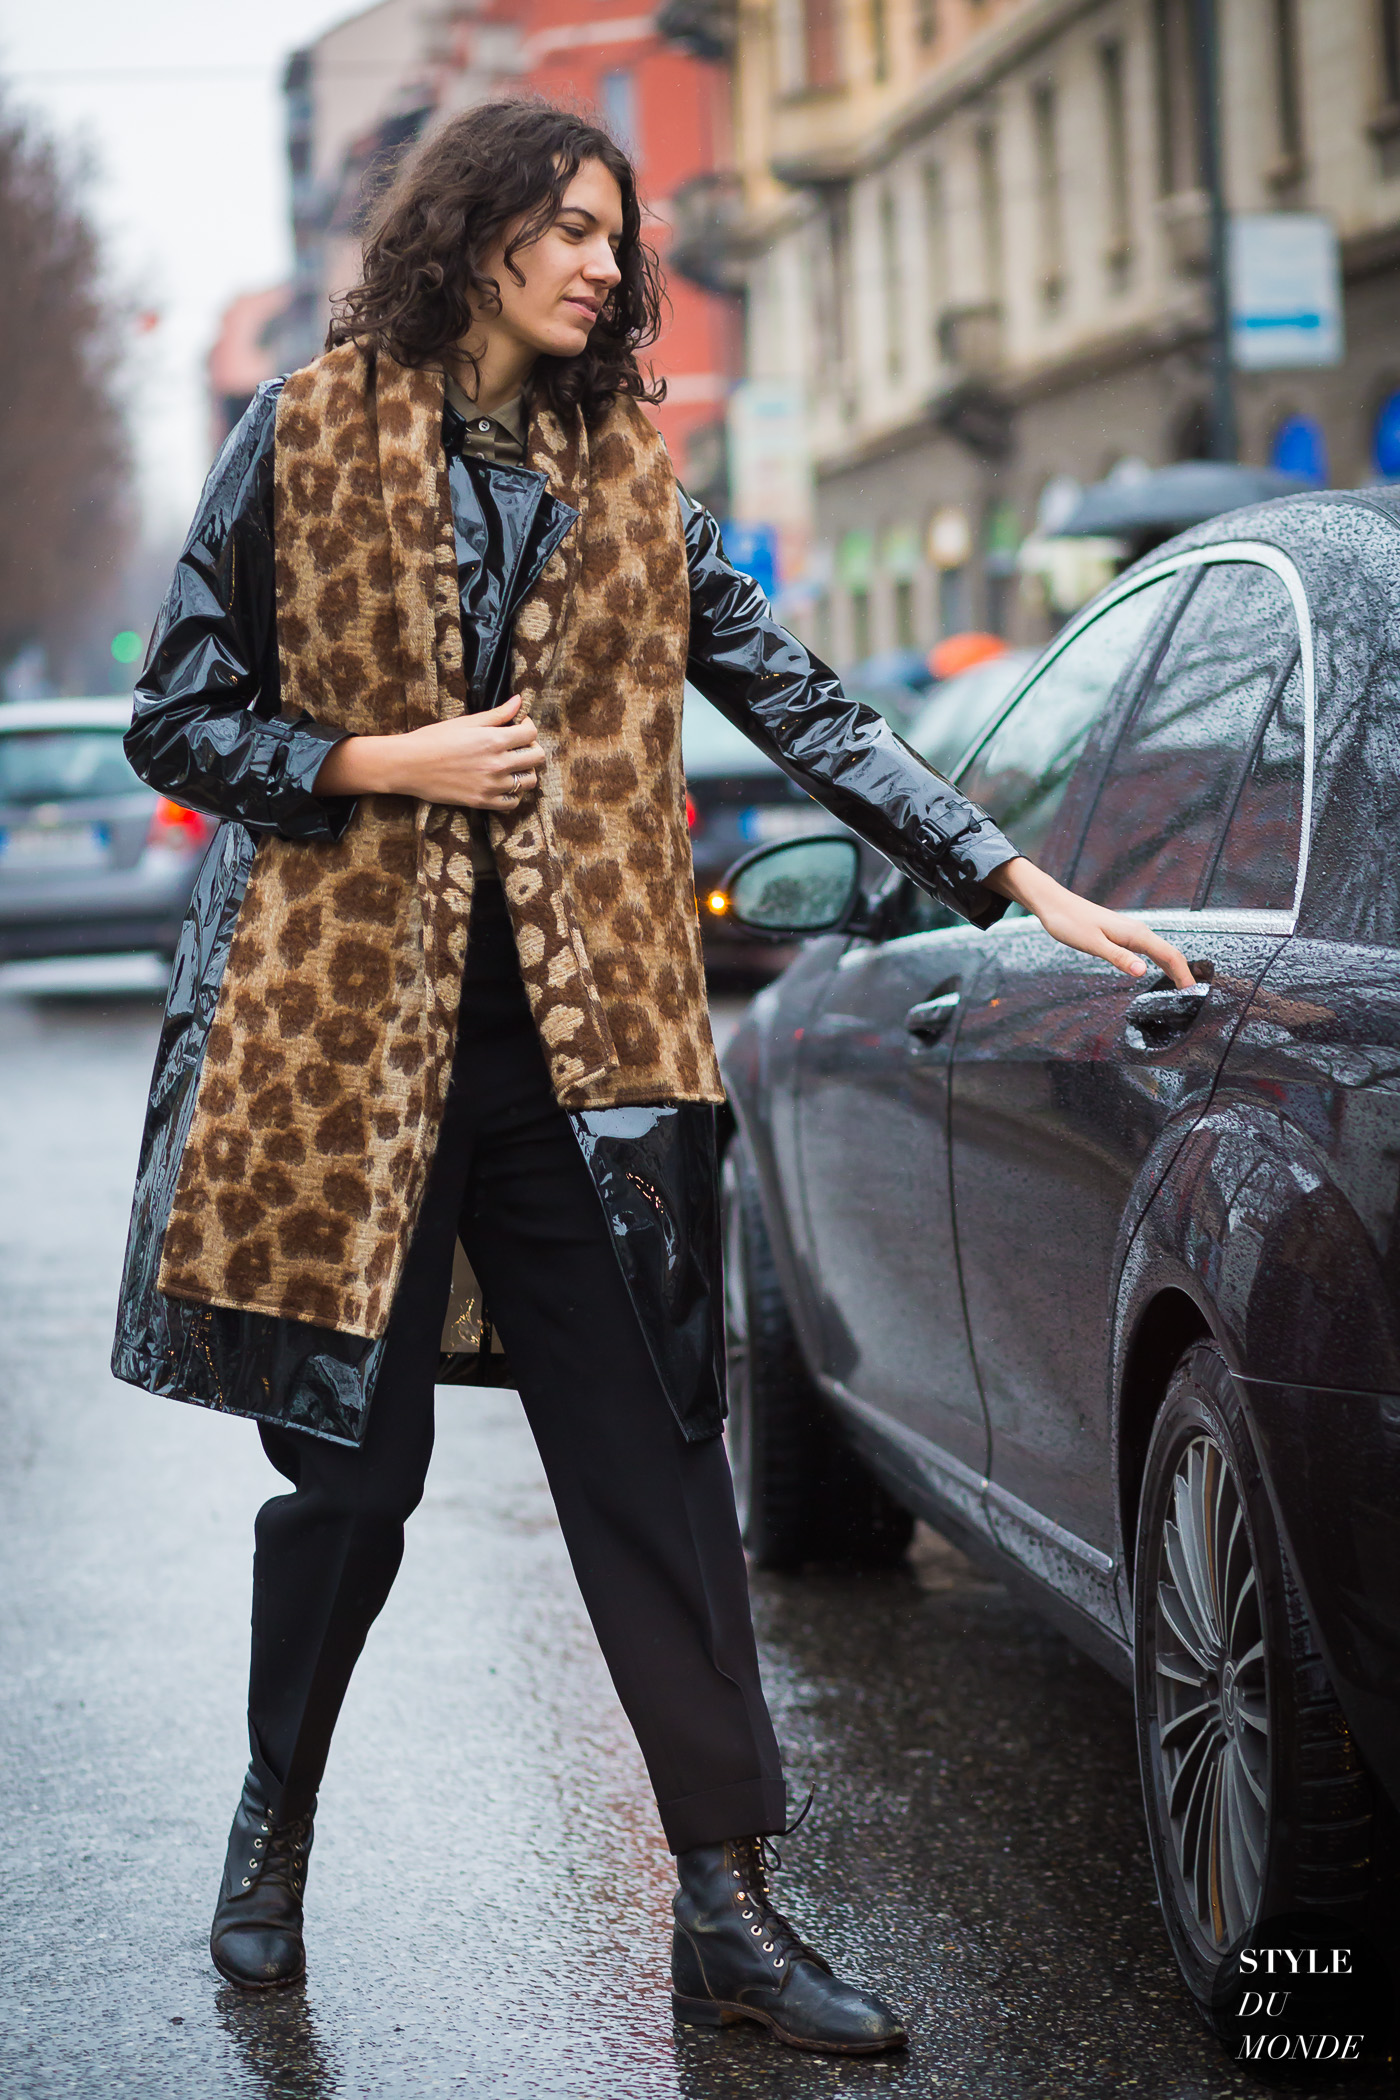 Stella Greenspan Street Style Street Fashion Streetsnaps by STYLEDUMONDE Street Style Fashion Photography